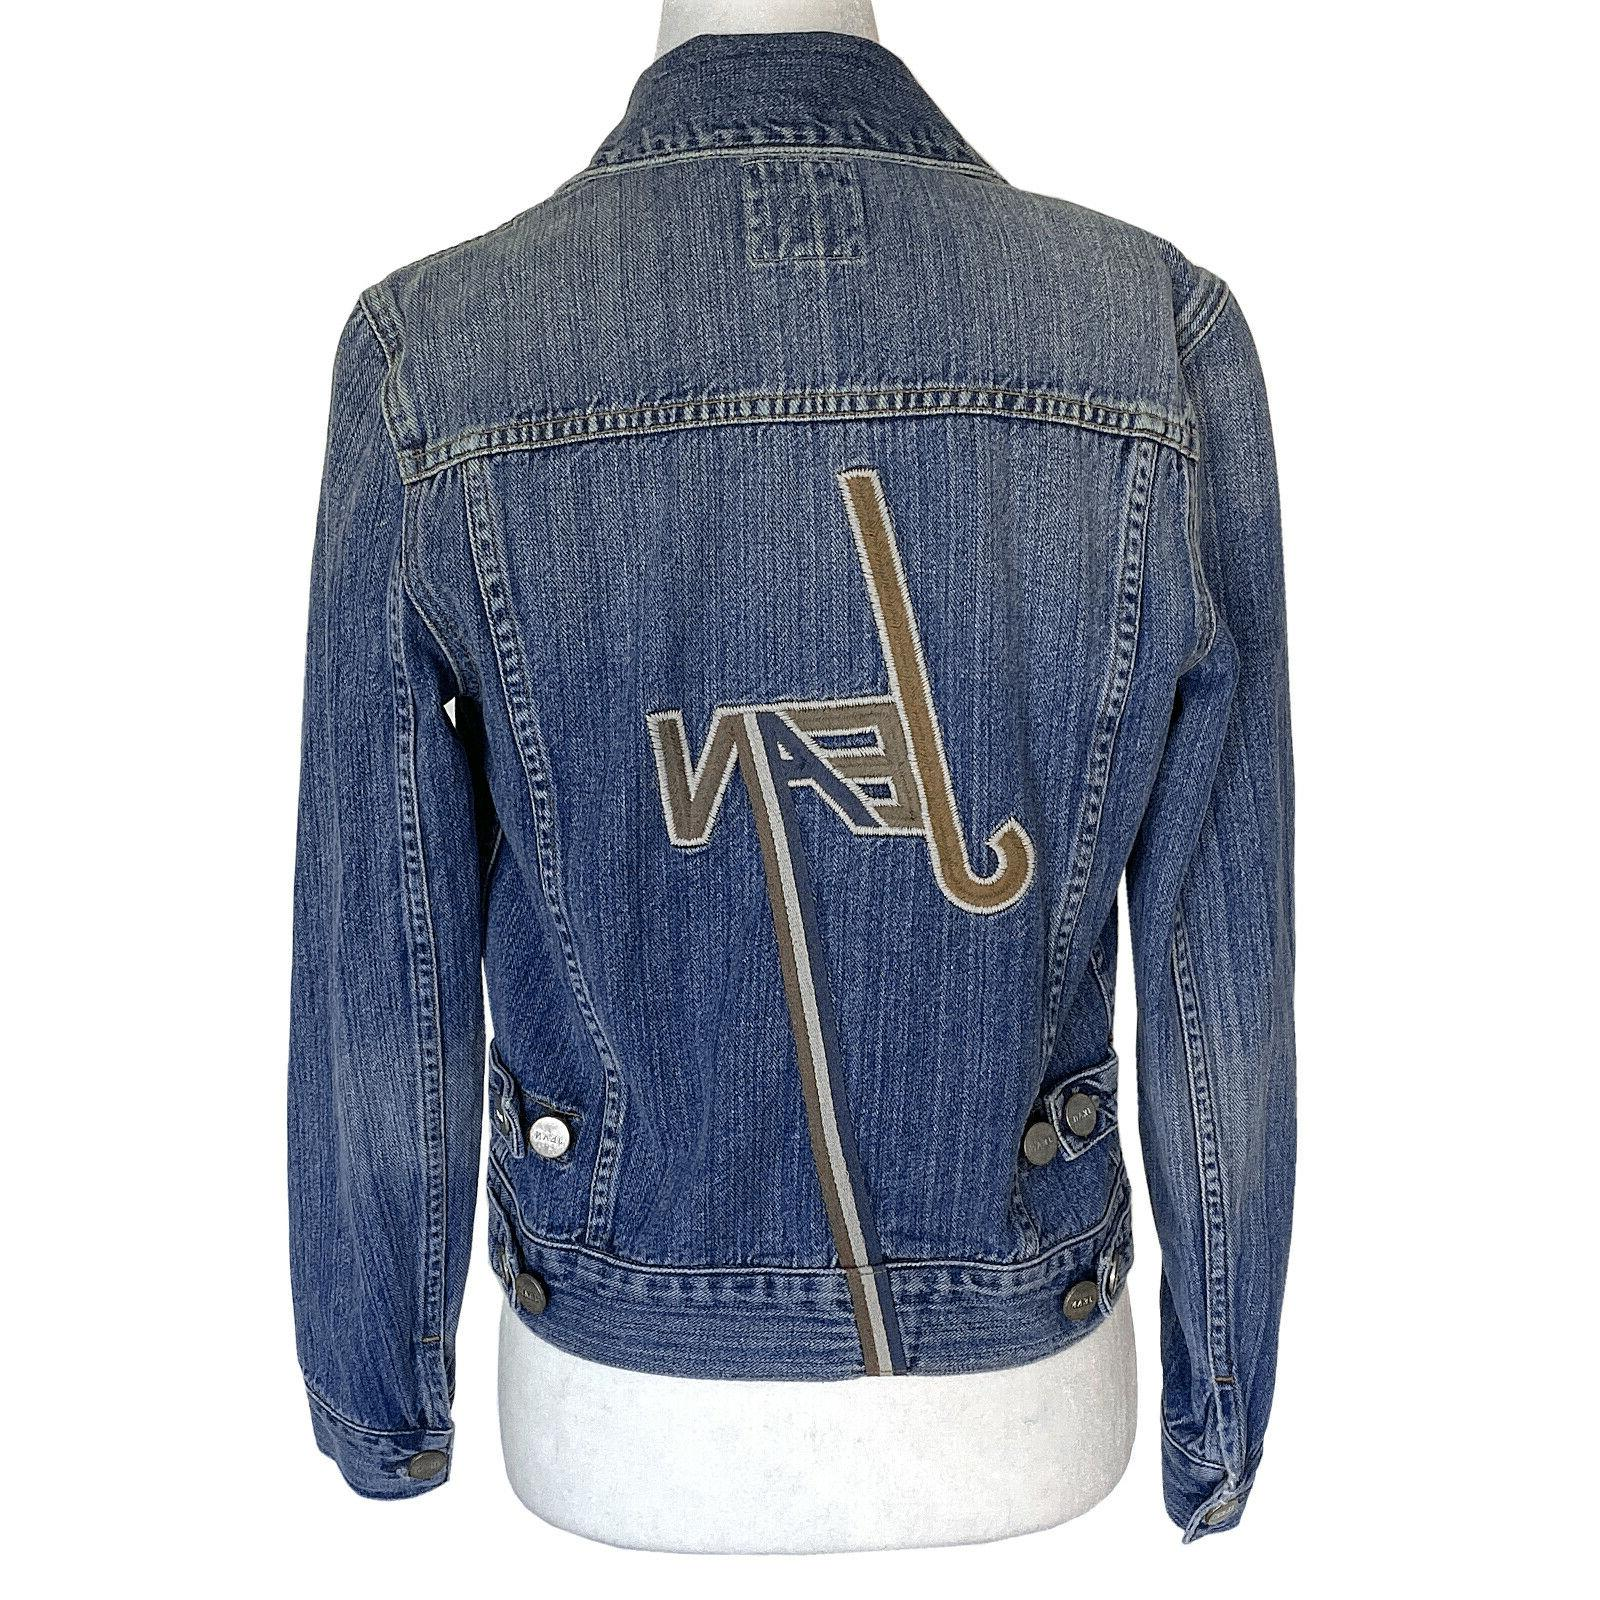 carter denim jacket size s originally 475